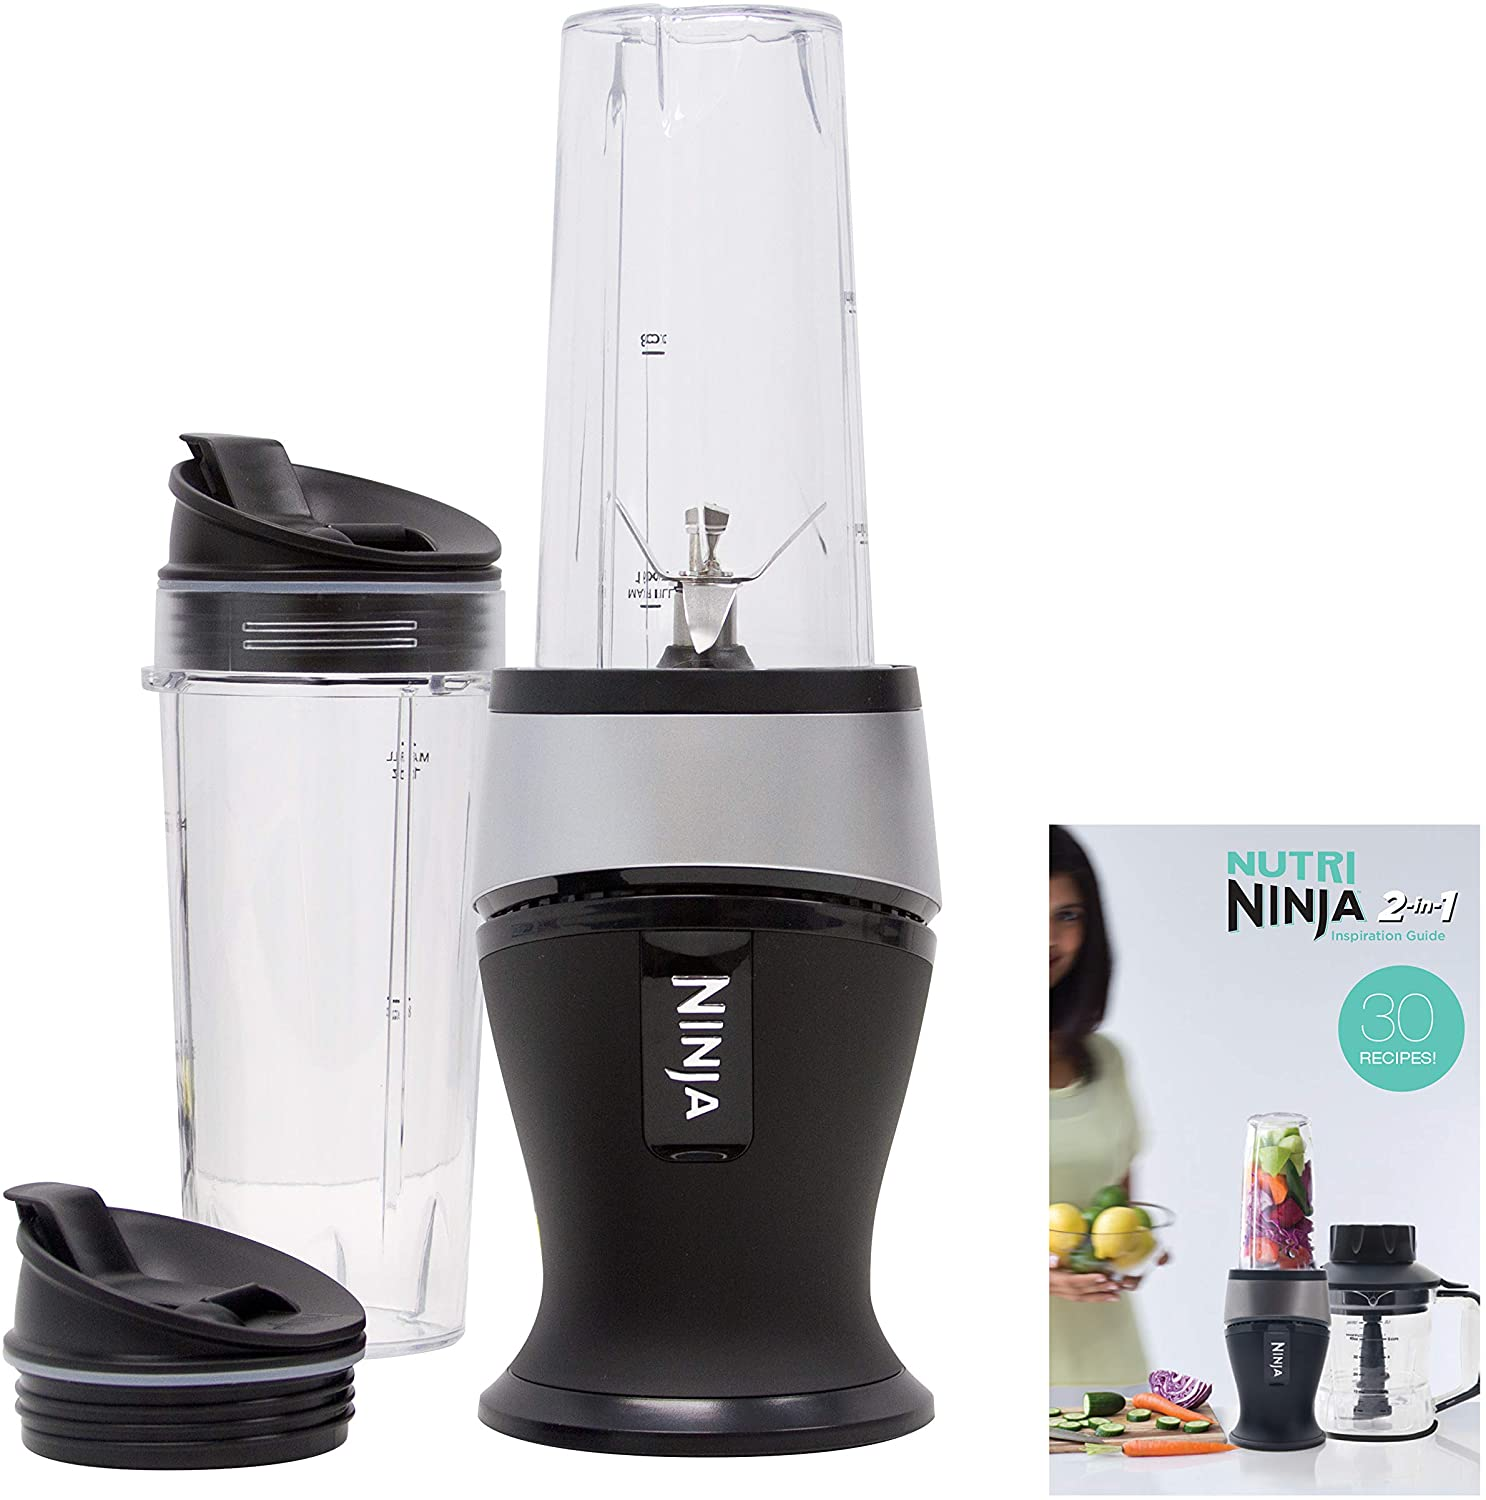 Ninja Personal Blender for Shakes, Smoothies, and Food Prep